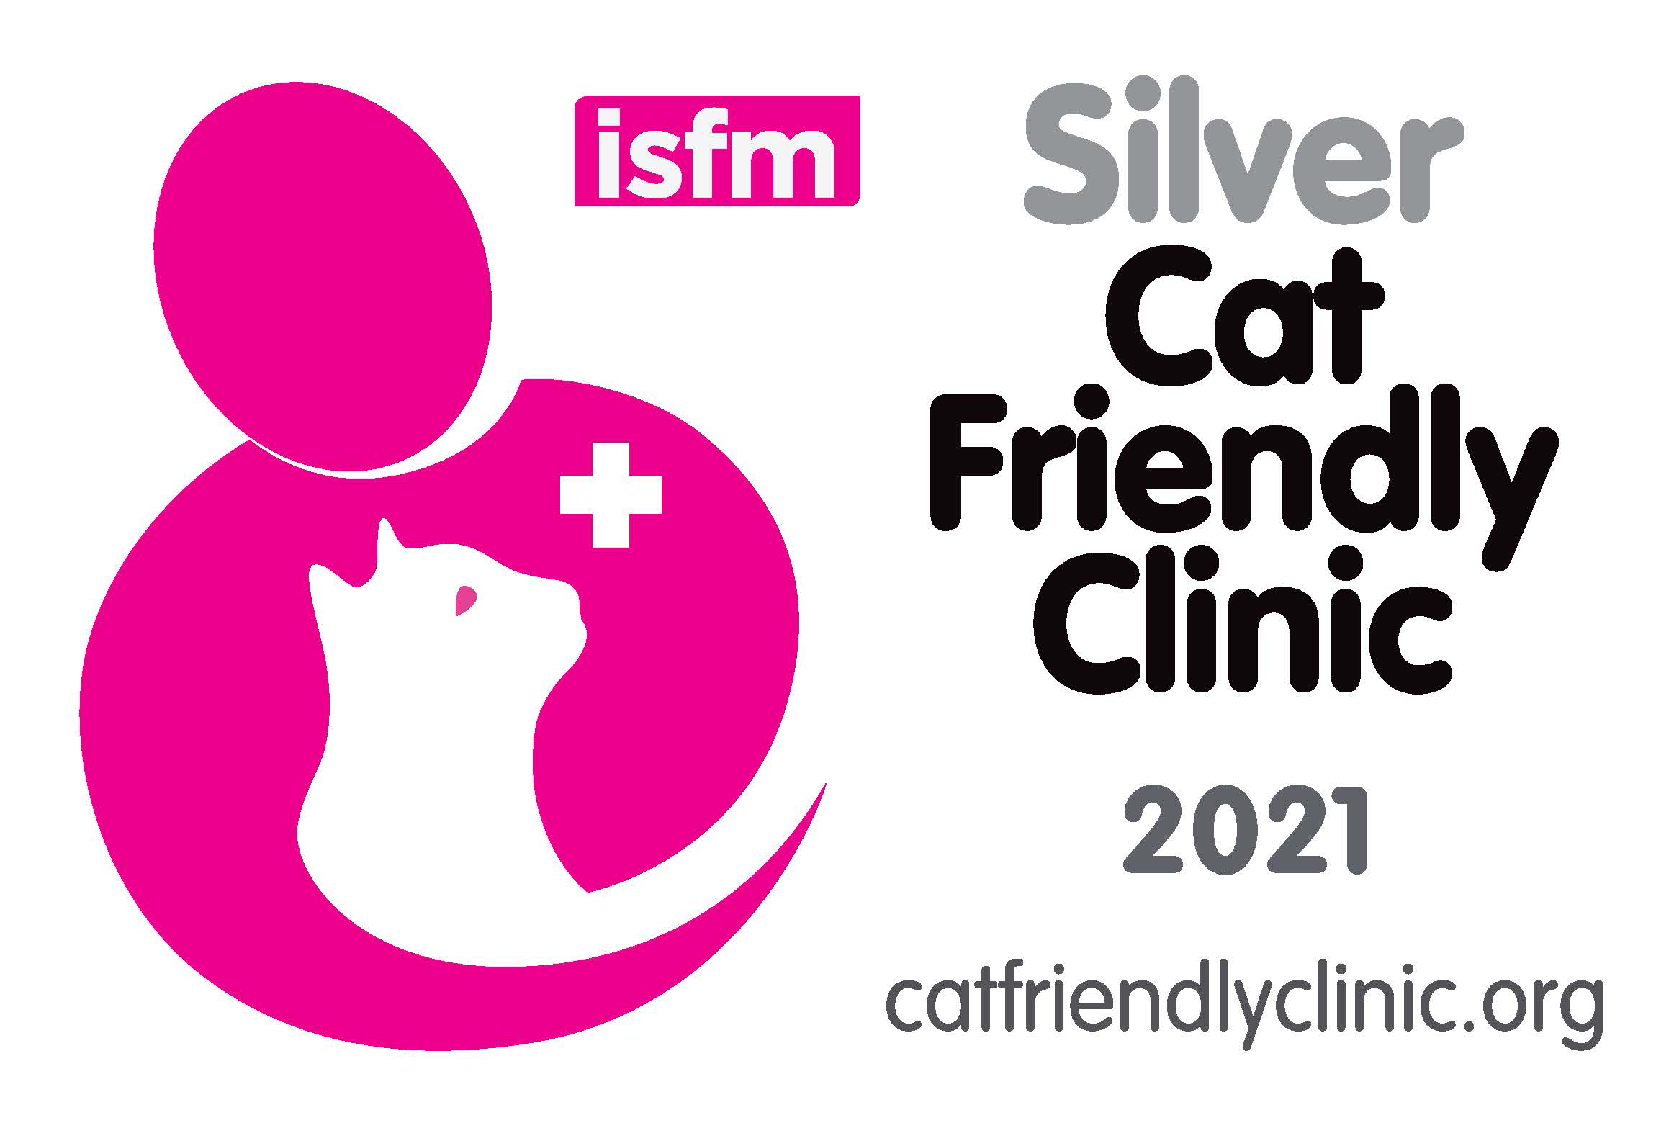 Silver Cat Friendly Clinic Award